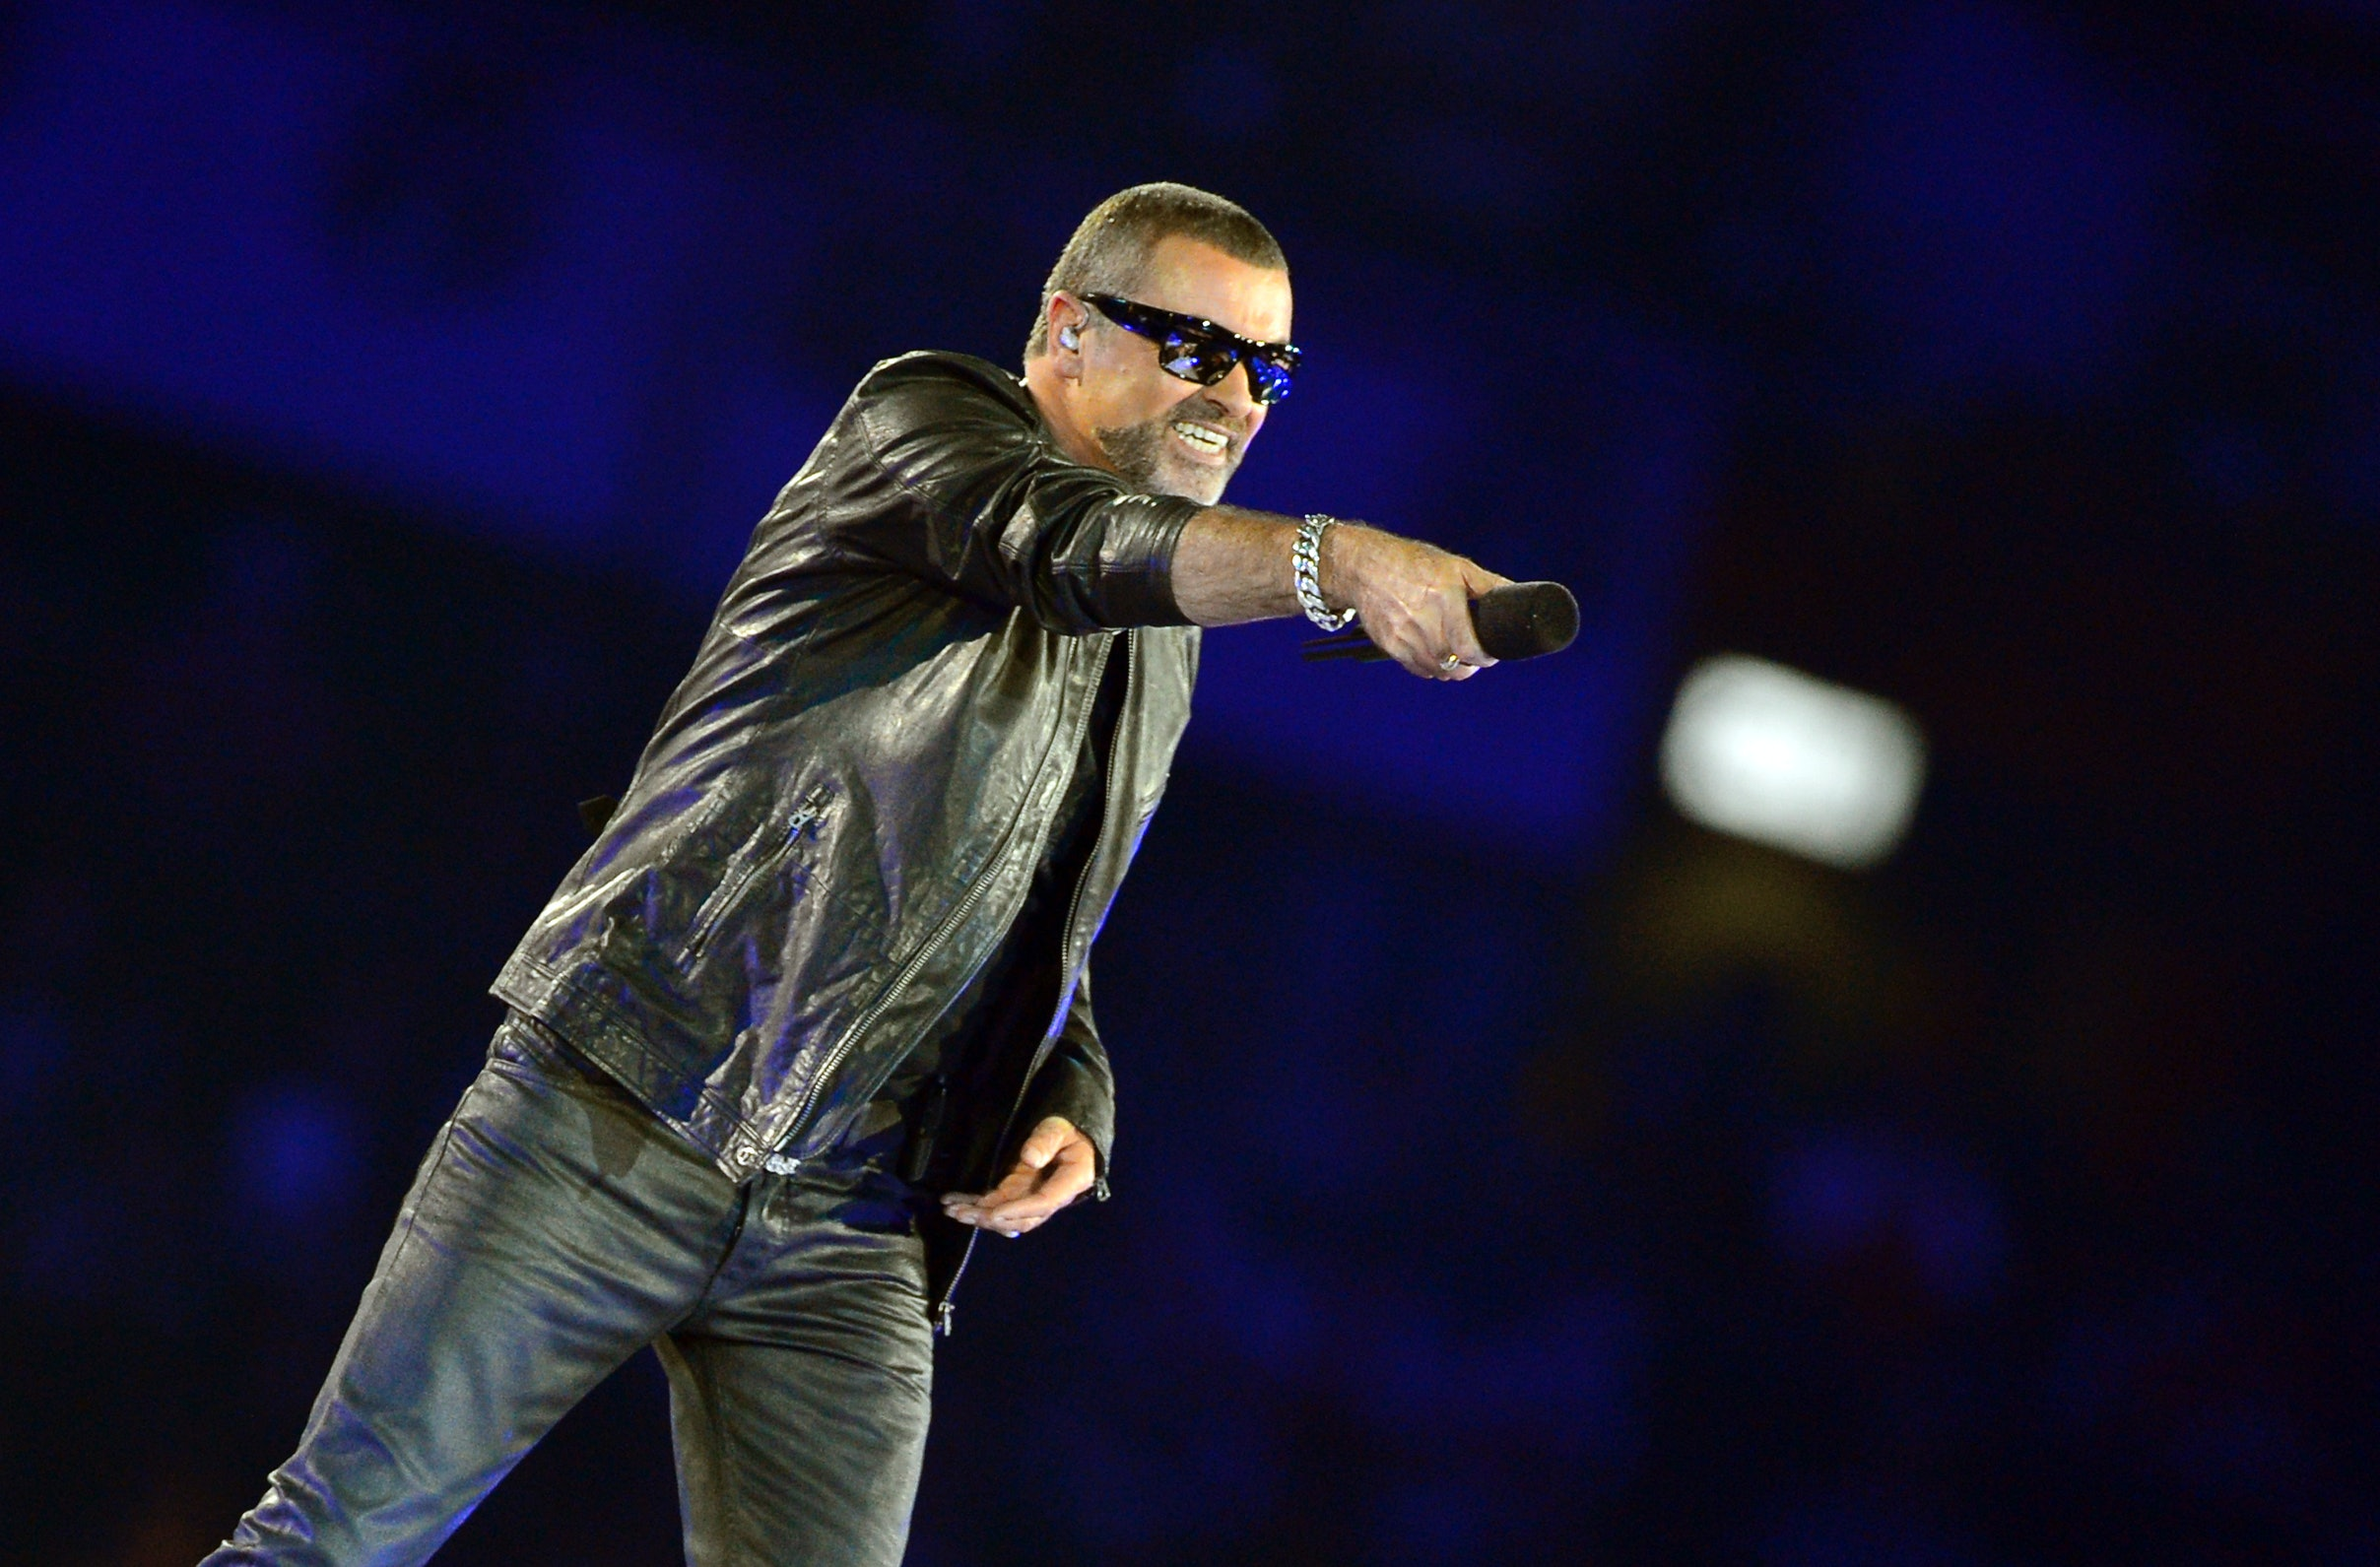 George Michael's Initial Autopsy Report Released